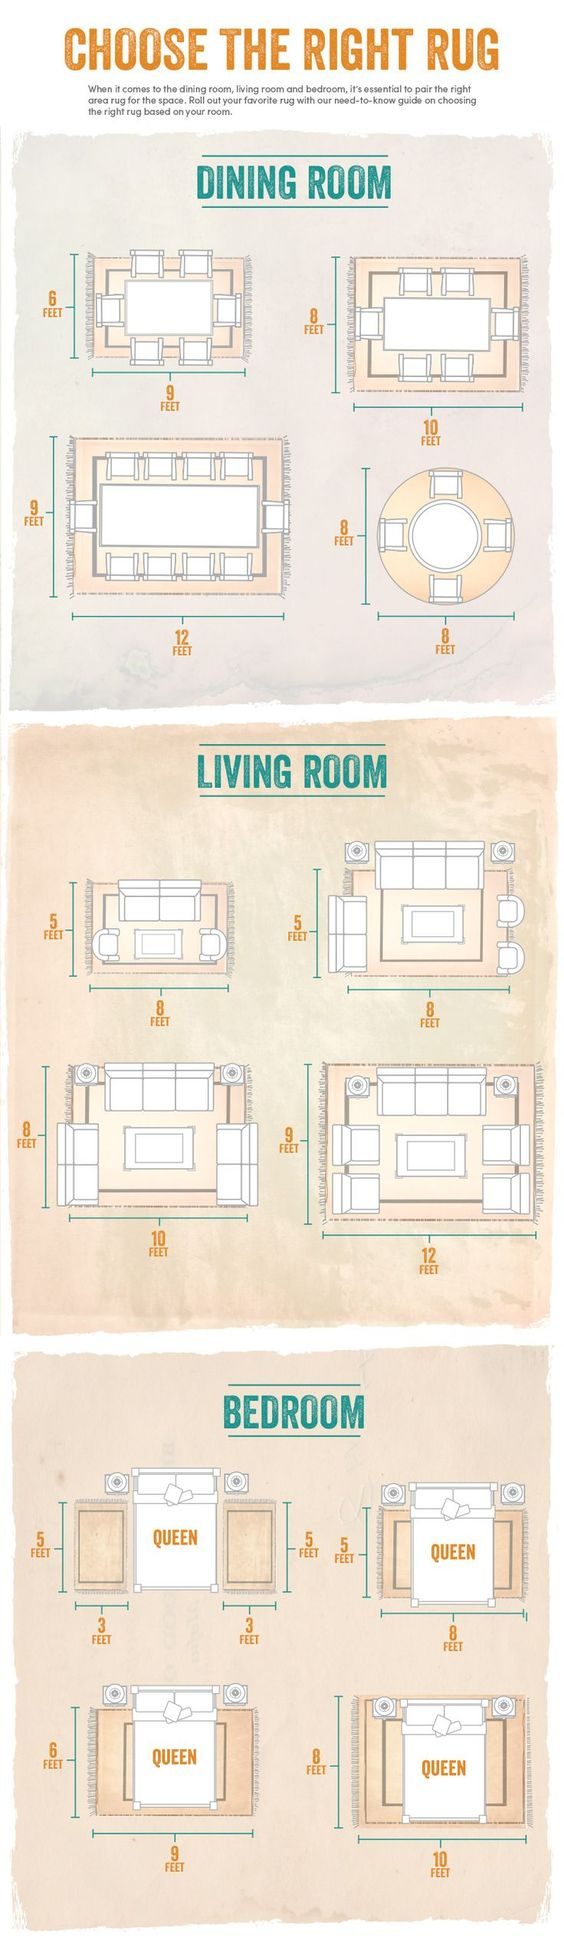 rug placement rugs and rug size on pinterest